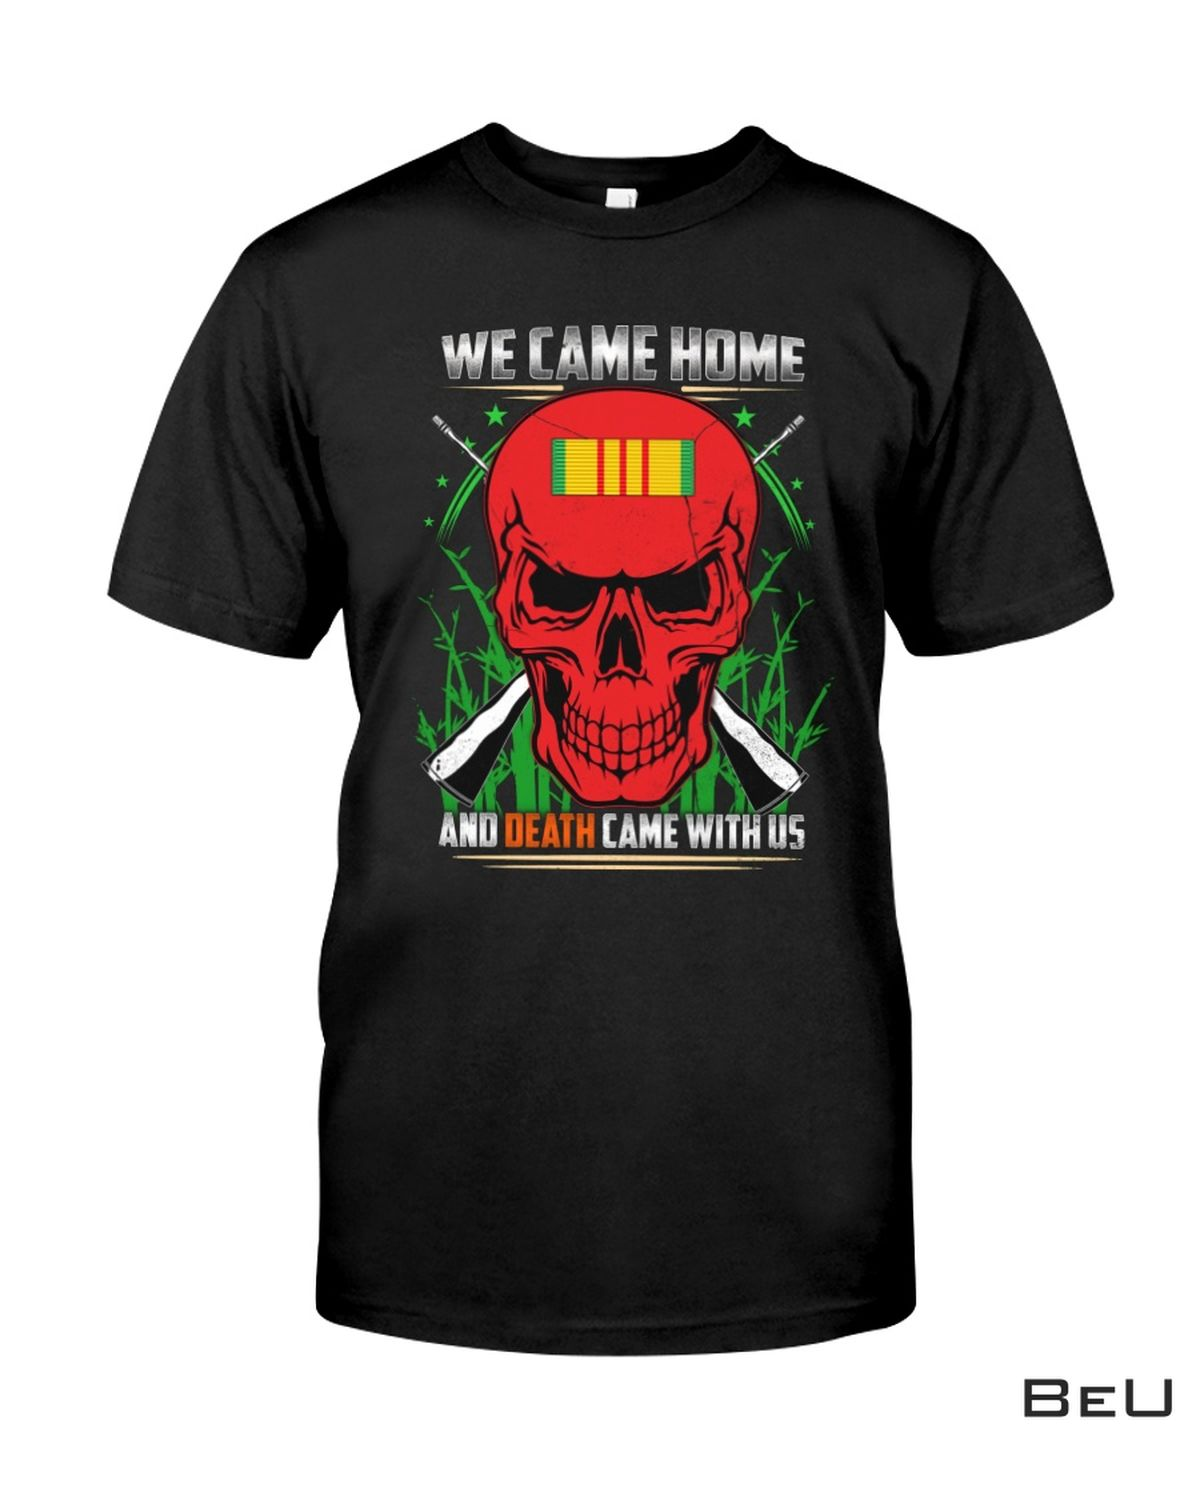 We Came Home And Death Came With Us Red Skull Shirt, hoodie, tank top